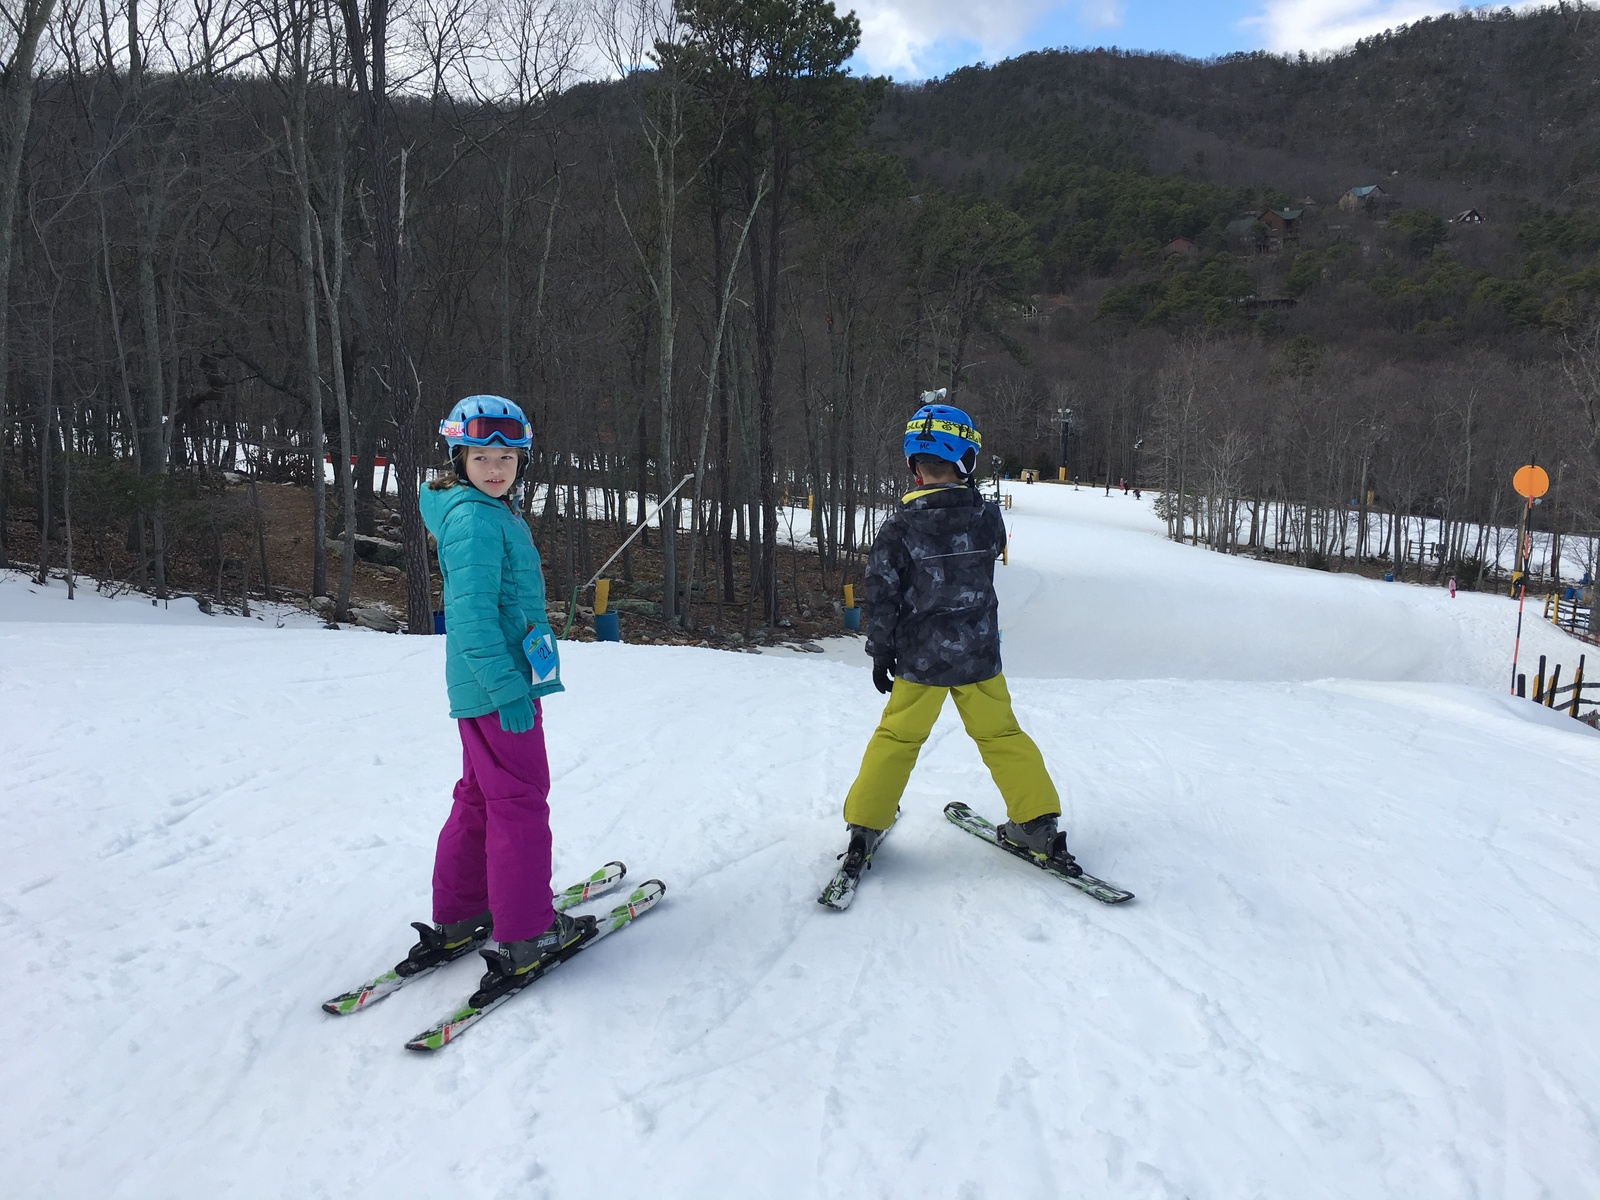 massanutten ski resort and mountain cruisers children's program in